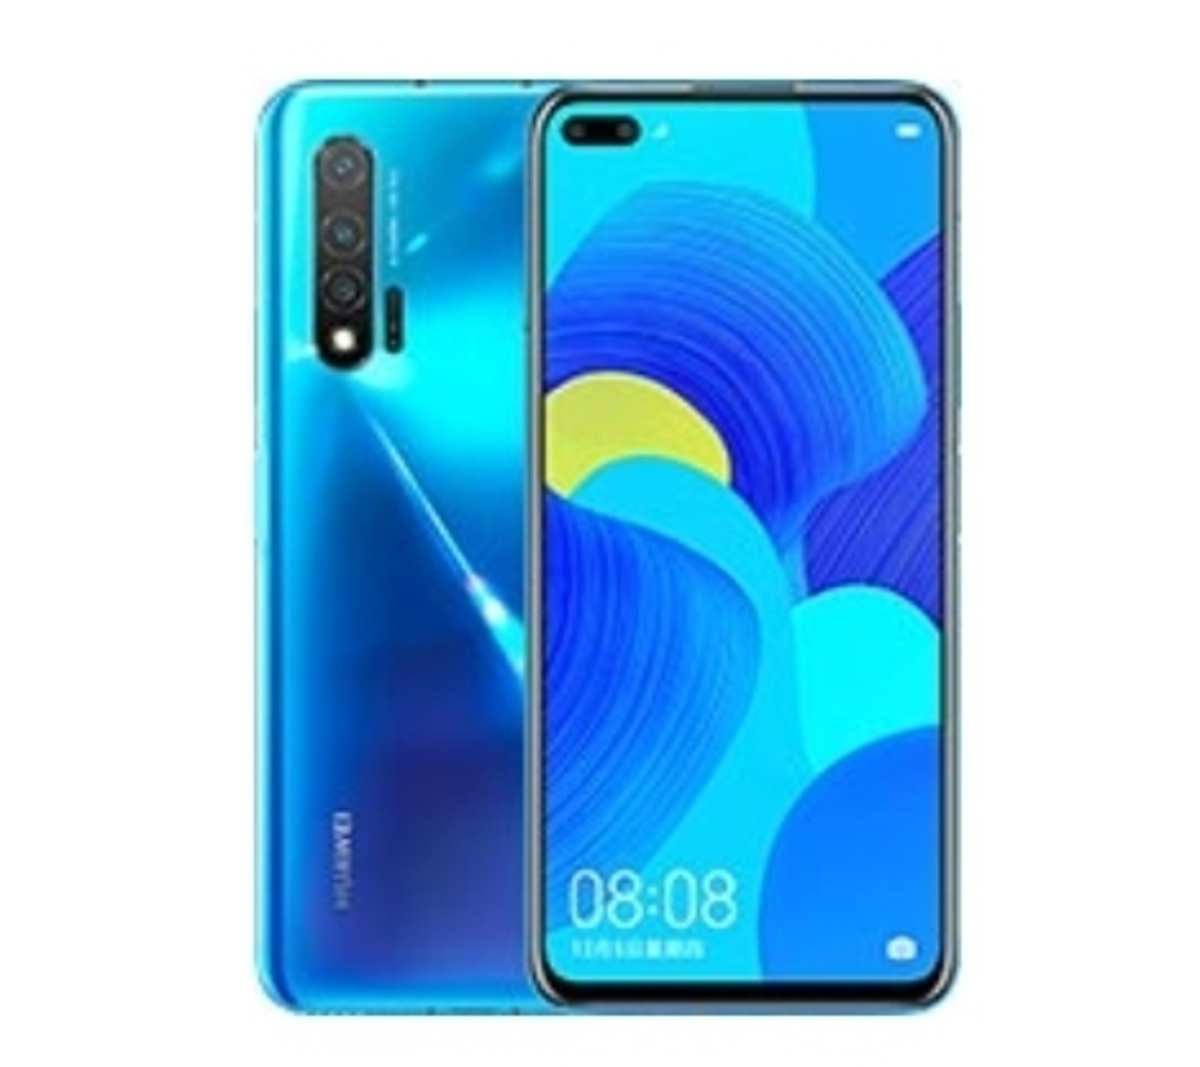 Huawei nova 6 5g, price, specs and image in Nigeria, specs and price of huawei nova 6 5g in Nigeria, Huawei nova 6 5g price in Nigeria